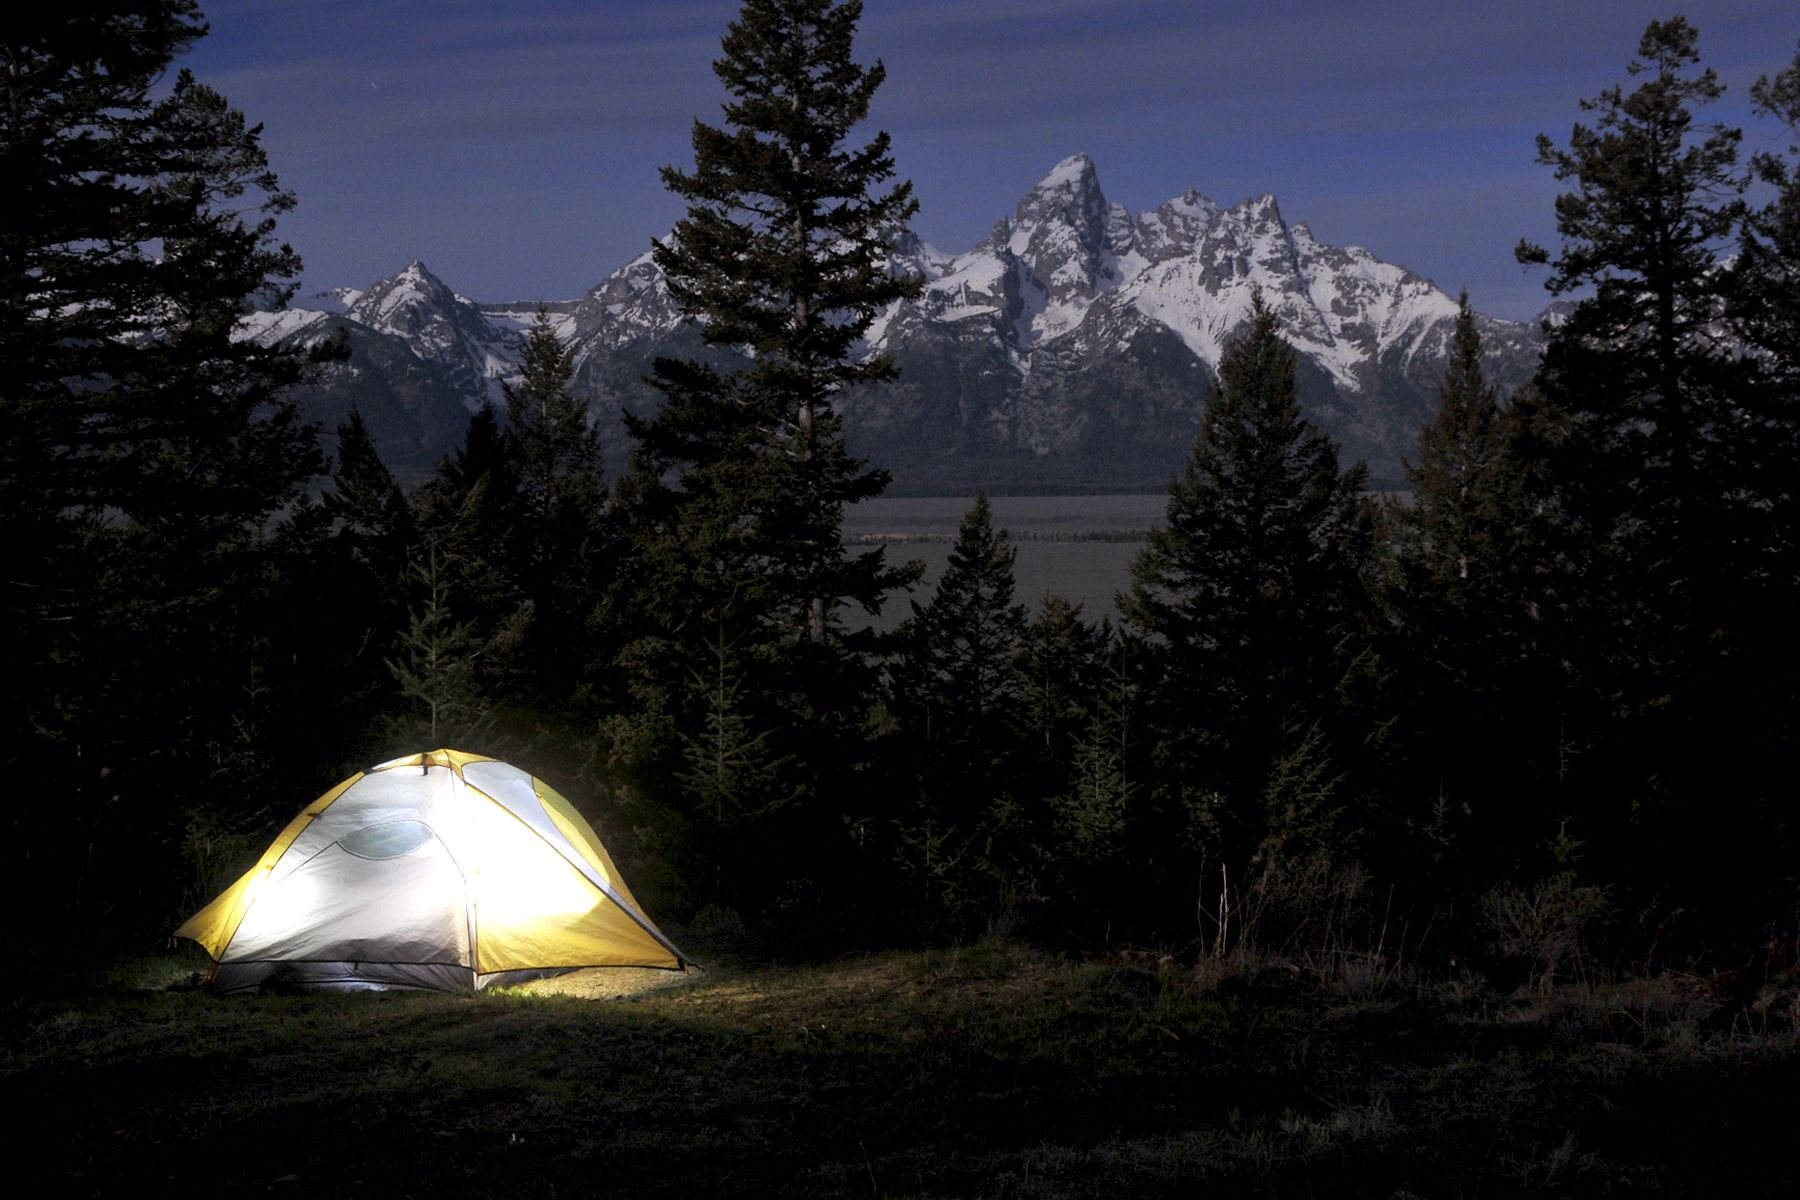 Camping in the Great Outdoors! Shadow Mountain, WY ...